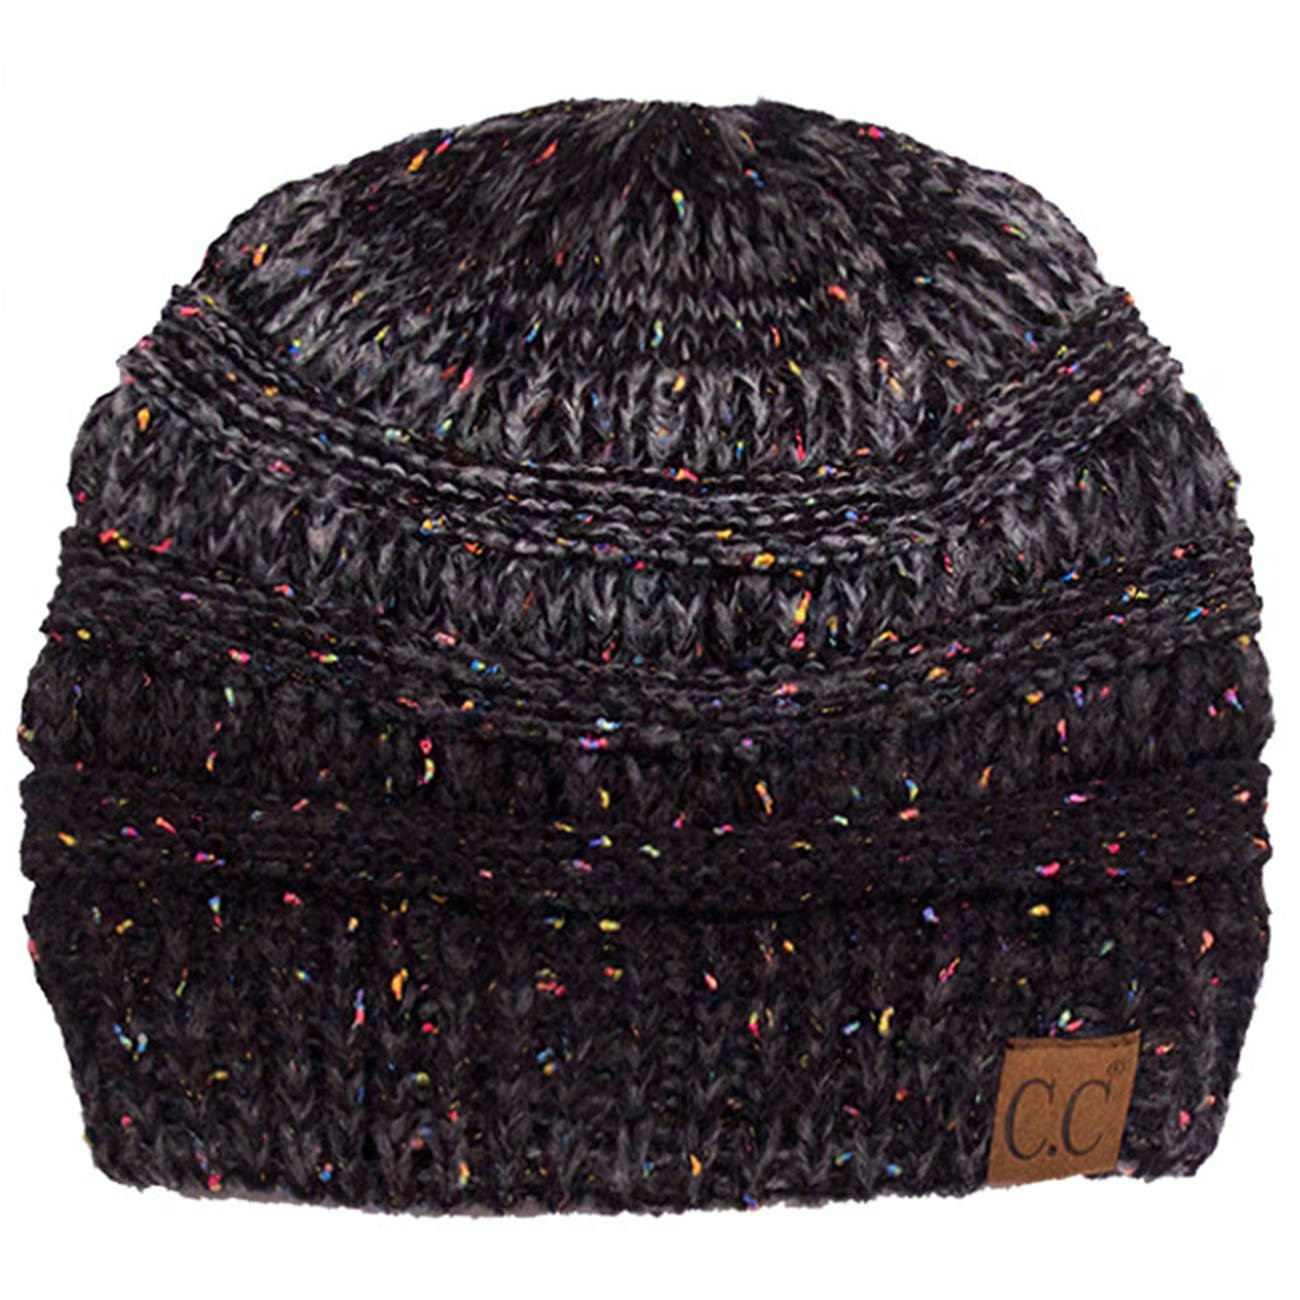 ScarvesMe Exclusive CC Ombre Knitted Beanie (Black)